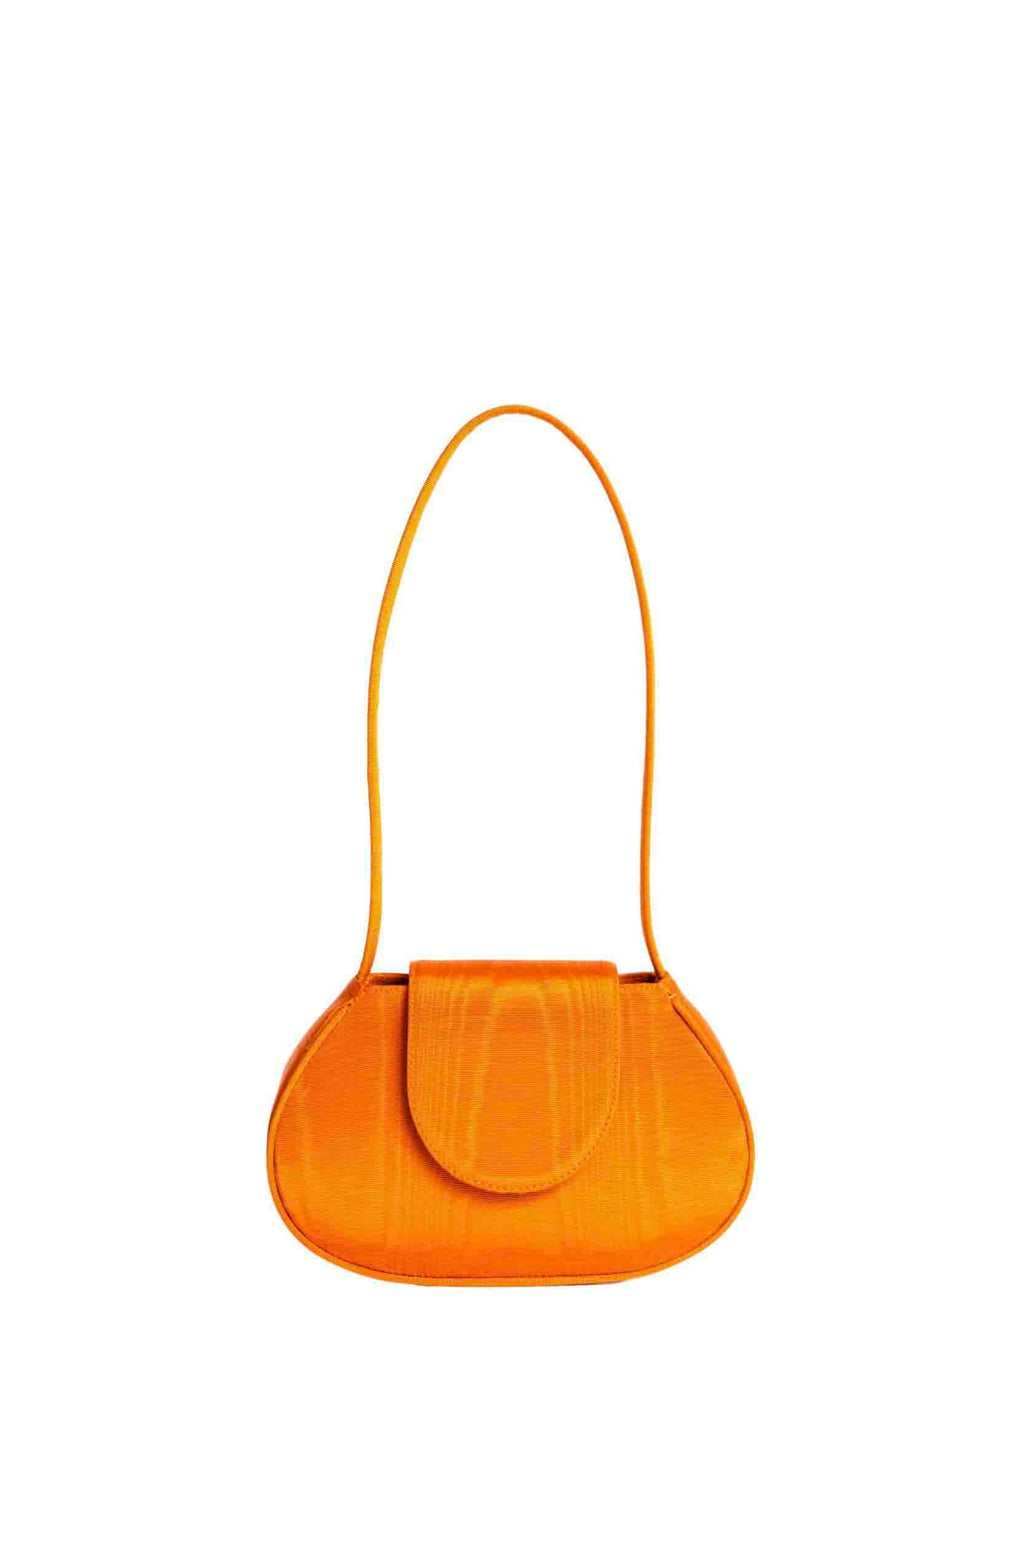 Ineva Baguette in Sun Copper Orange Moire